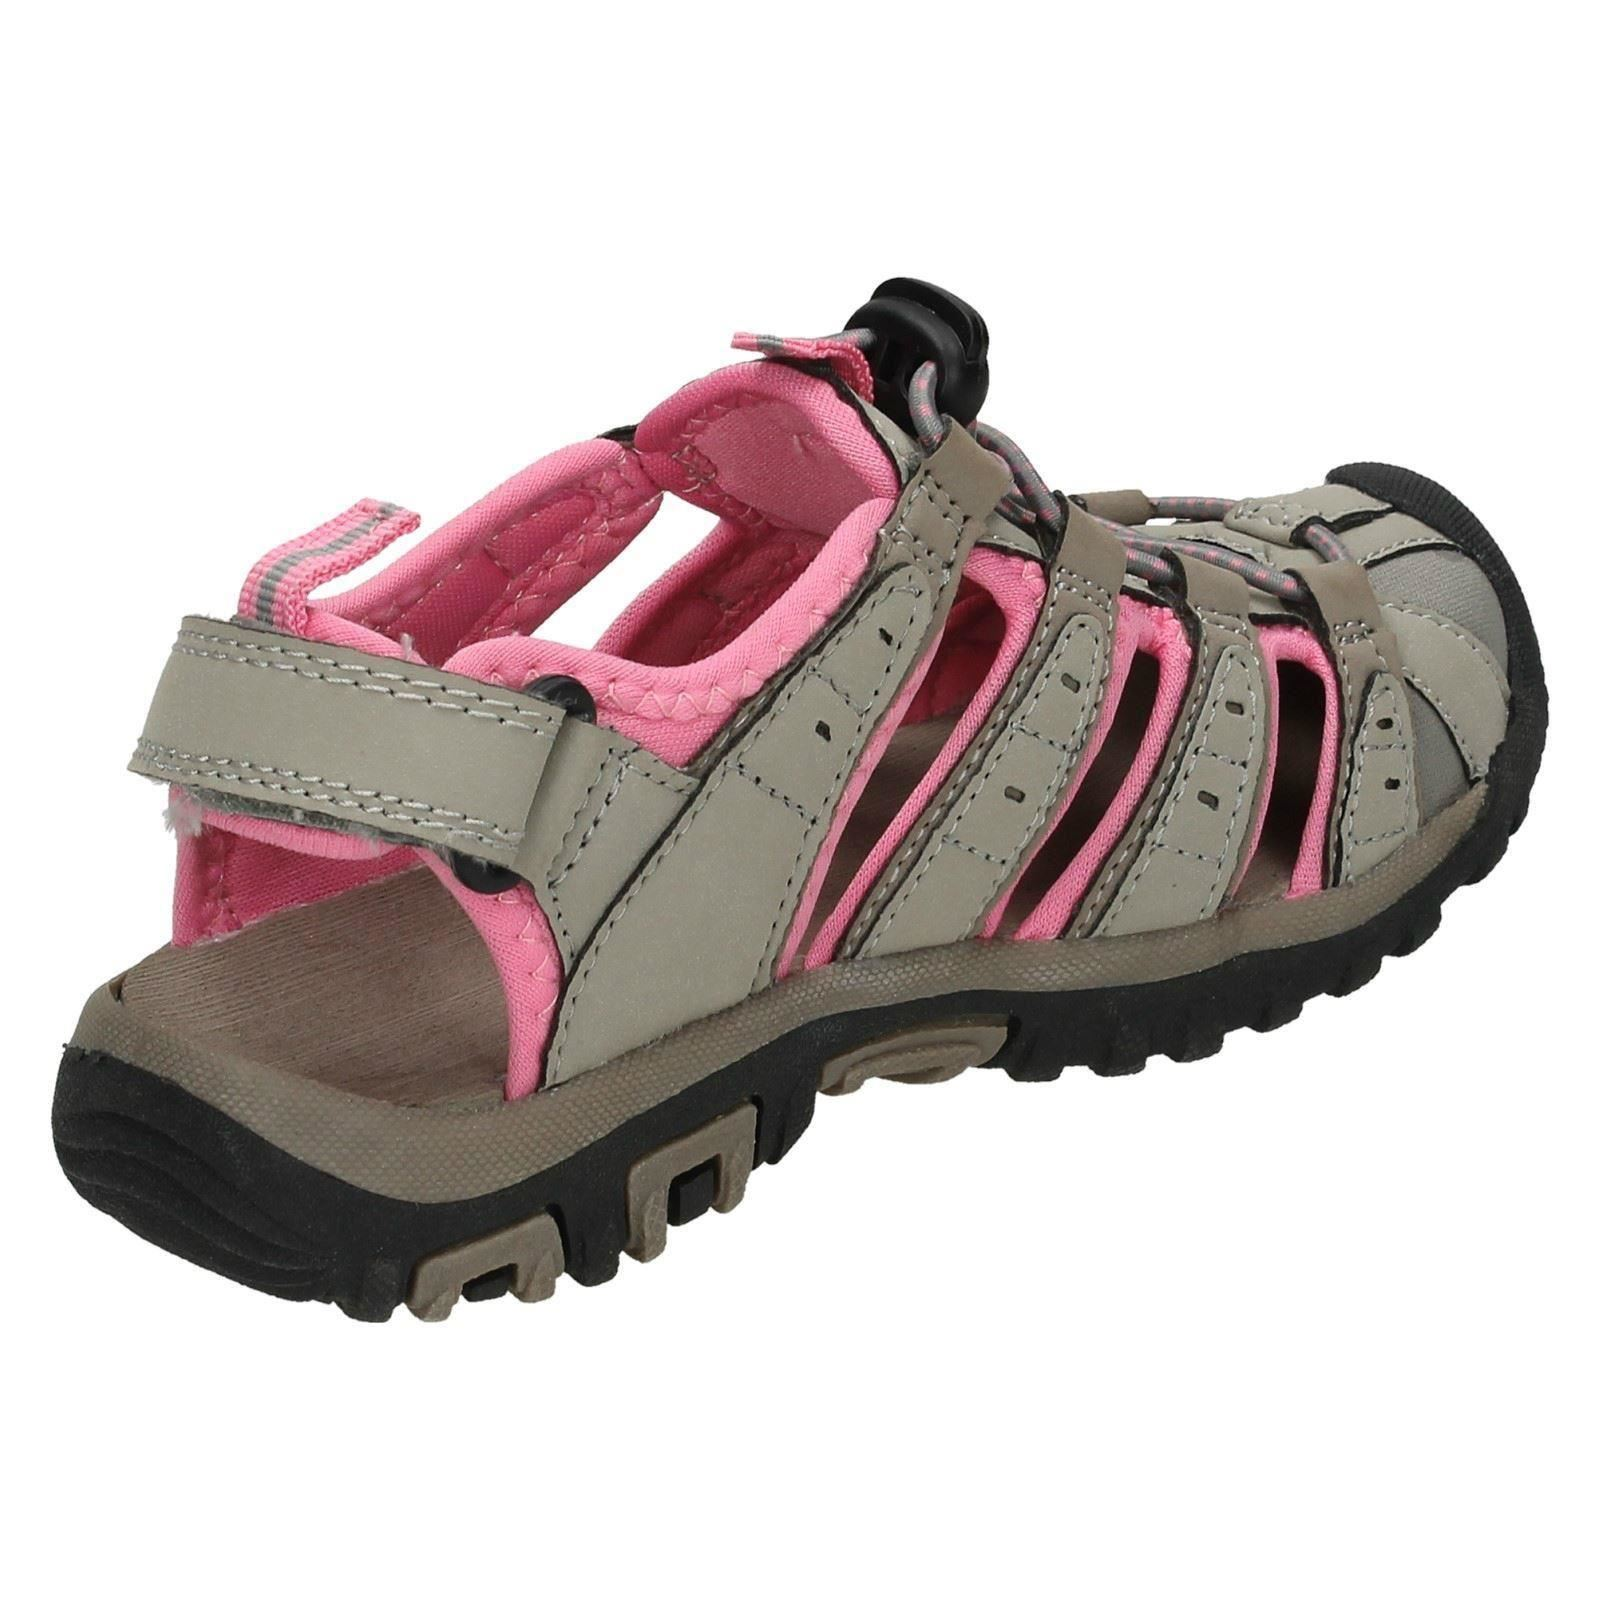 Junior Girls Hi-Tec Closed-Toe Sandals - 'Shore JRG'